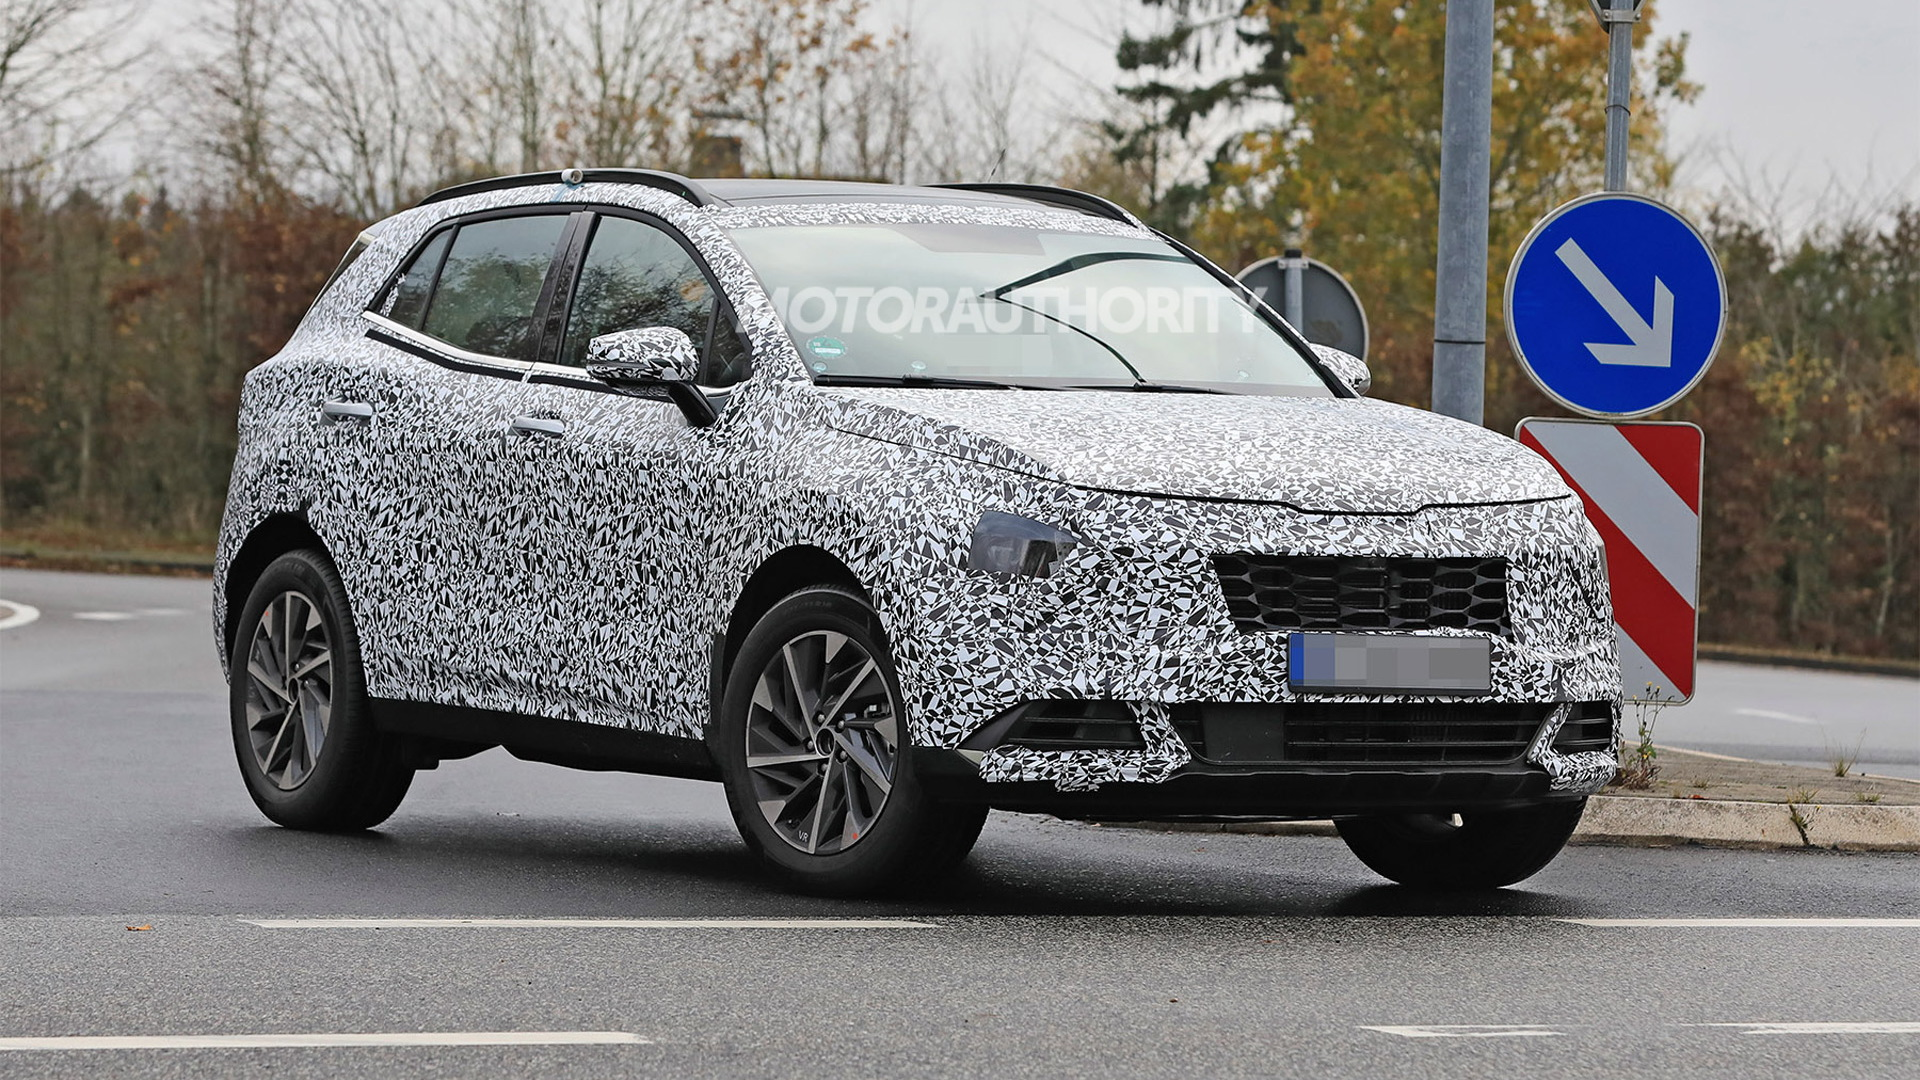 2023 Kia Sportage spy shots - Photo credit: S. Baldauf/SB-Medien